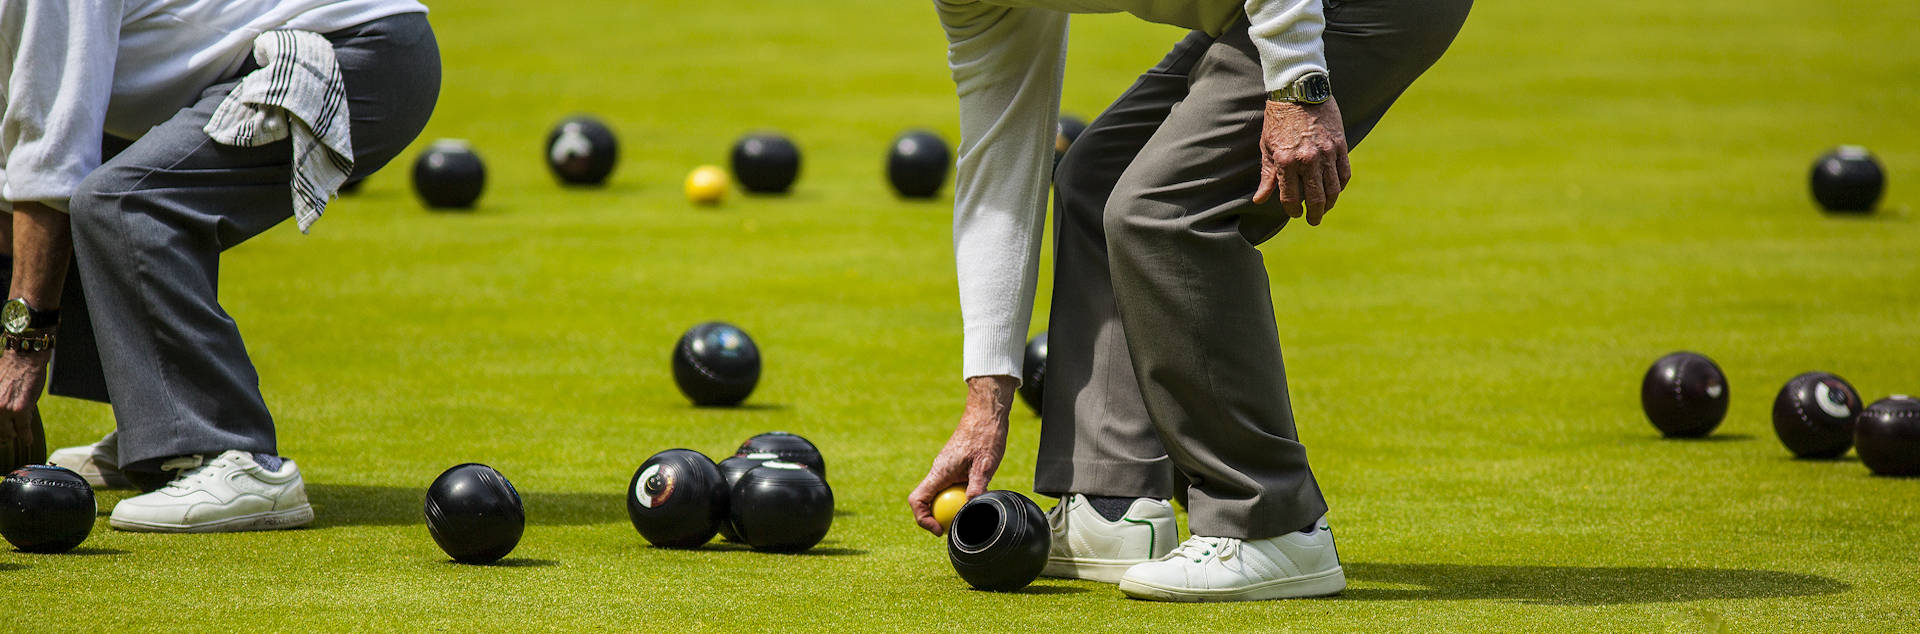 Winter & Co: Bowling Club Insurance